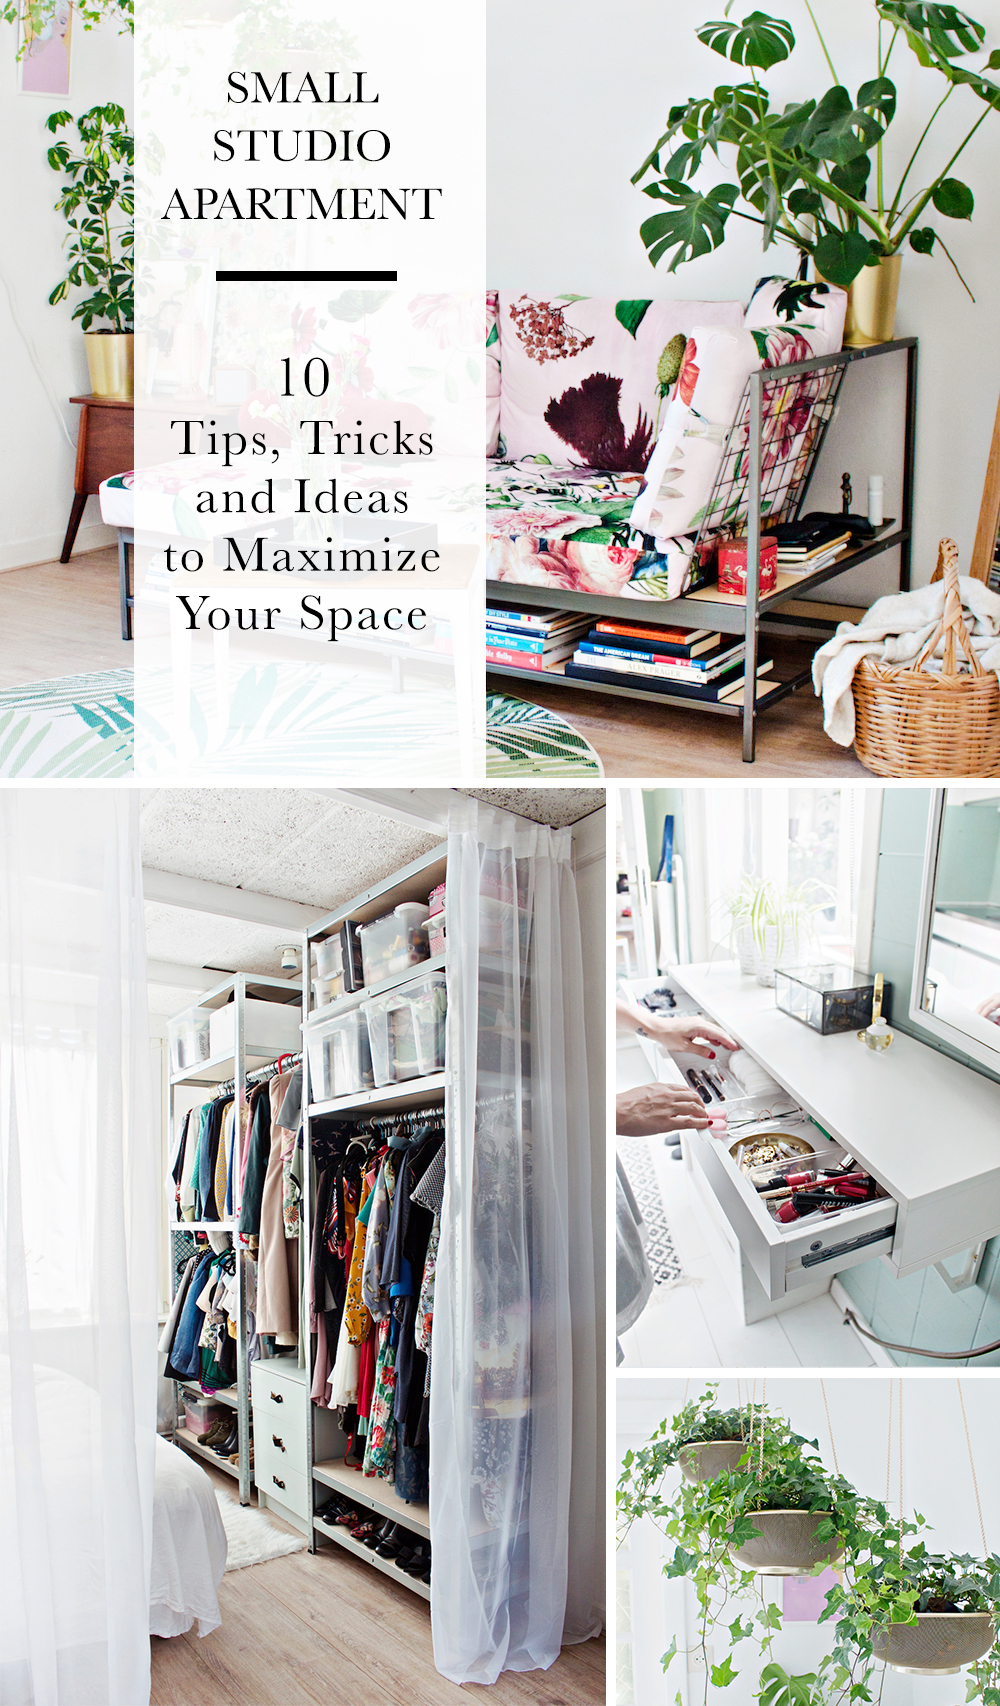 SMALL STUDIO APARTMENT | 10 Tips, Tricks and Ideas to Maximize Your Space